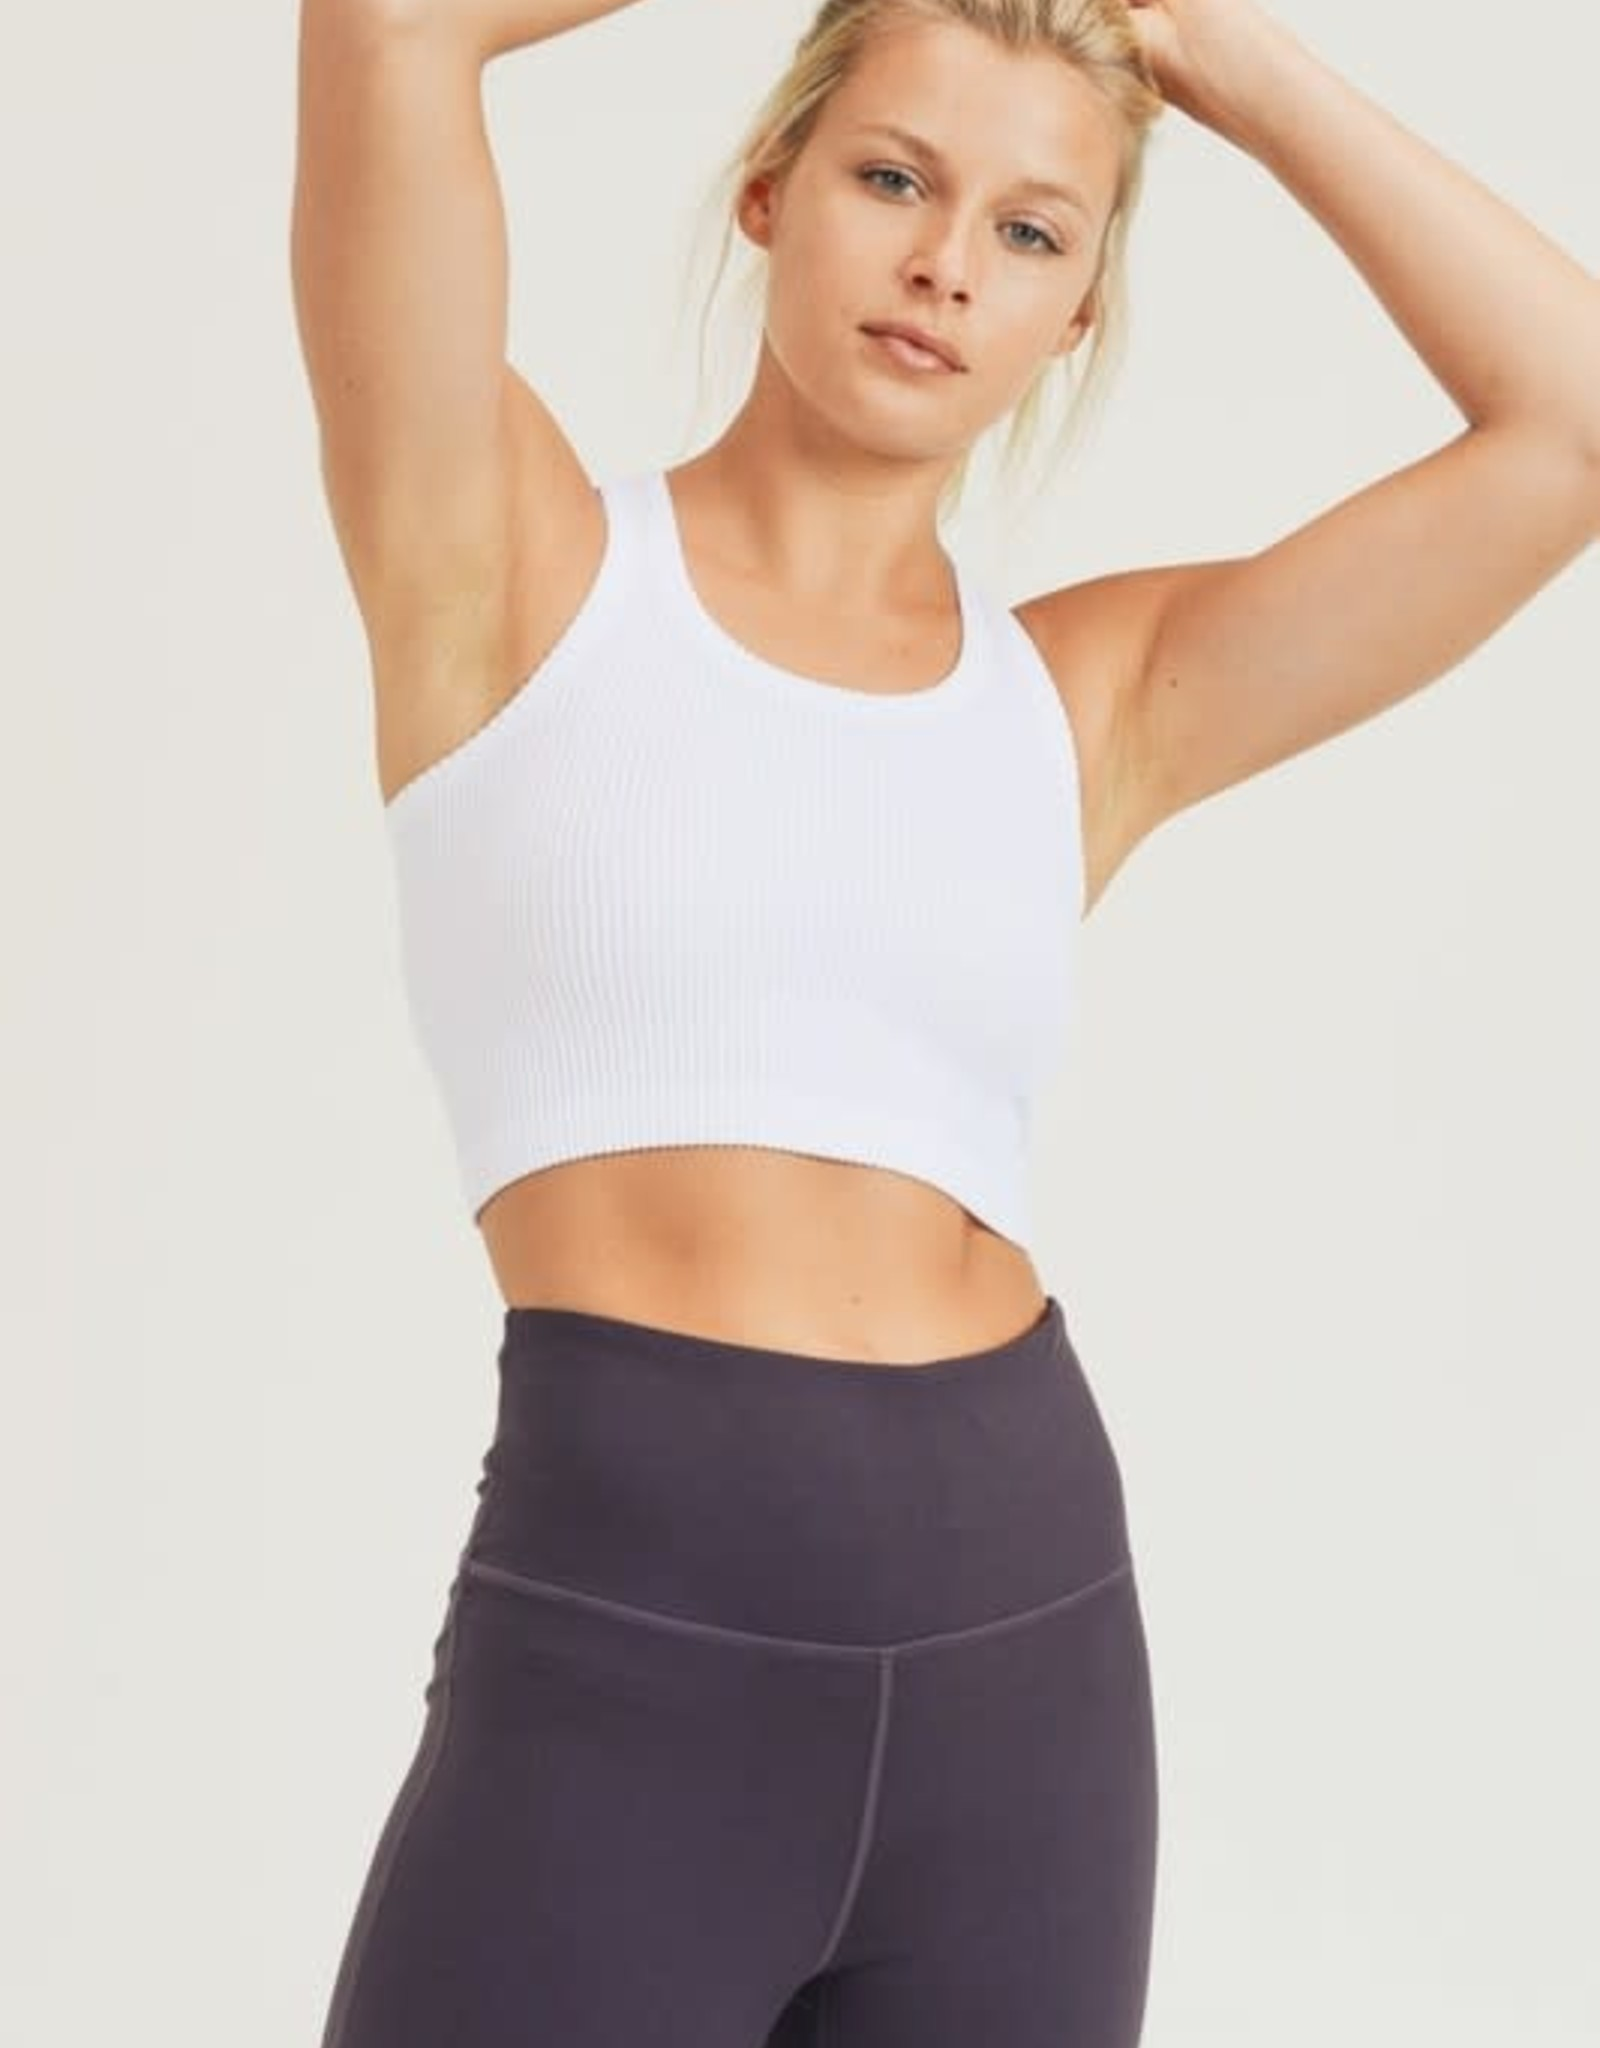 The Essential Racer Back Top